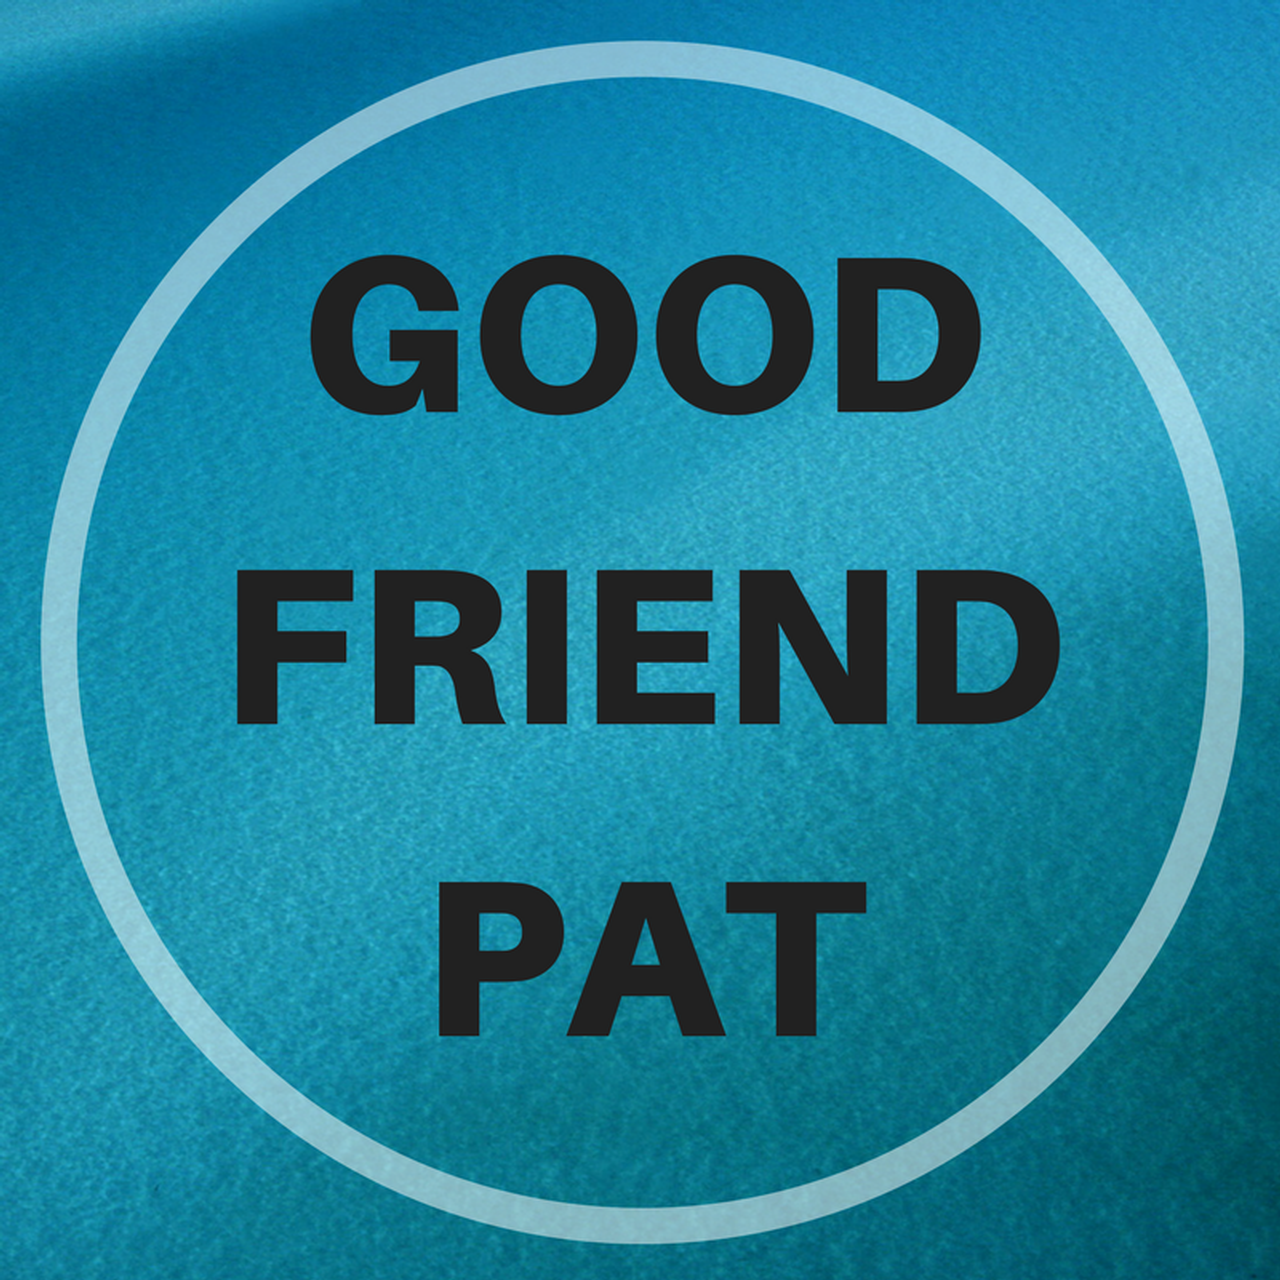 Good Friend Pat